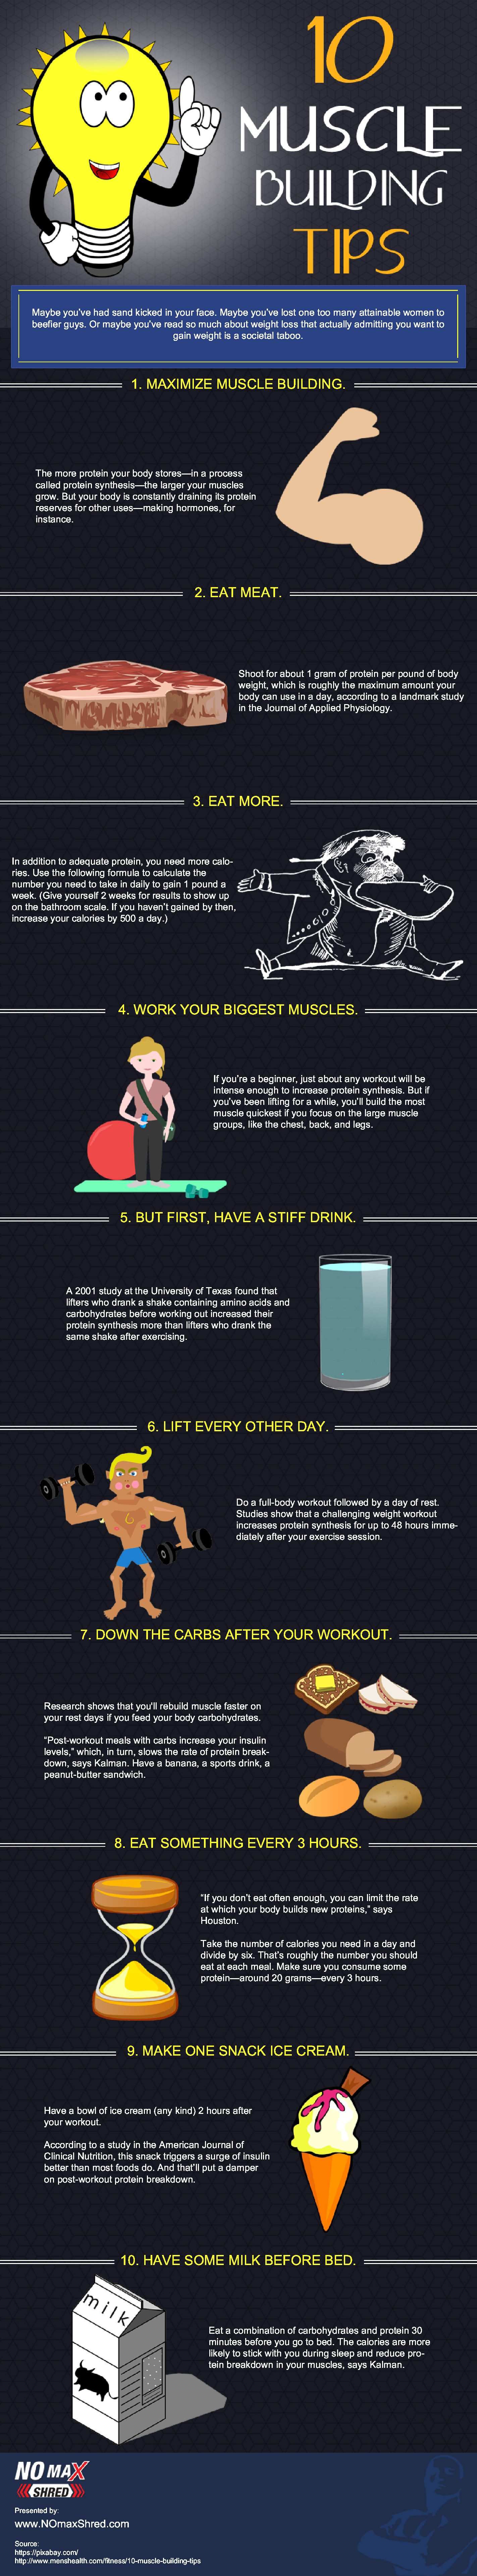 How To Build Muscle Faster - Infographic